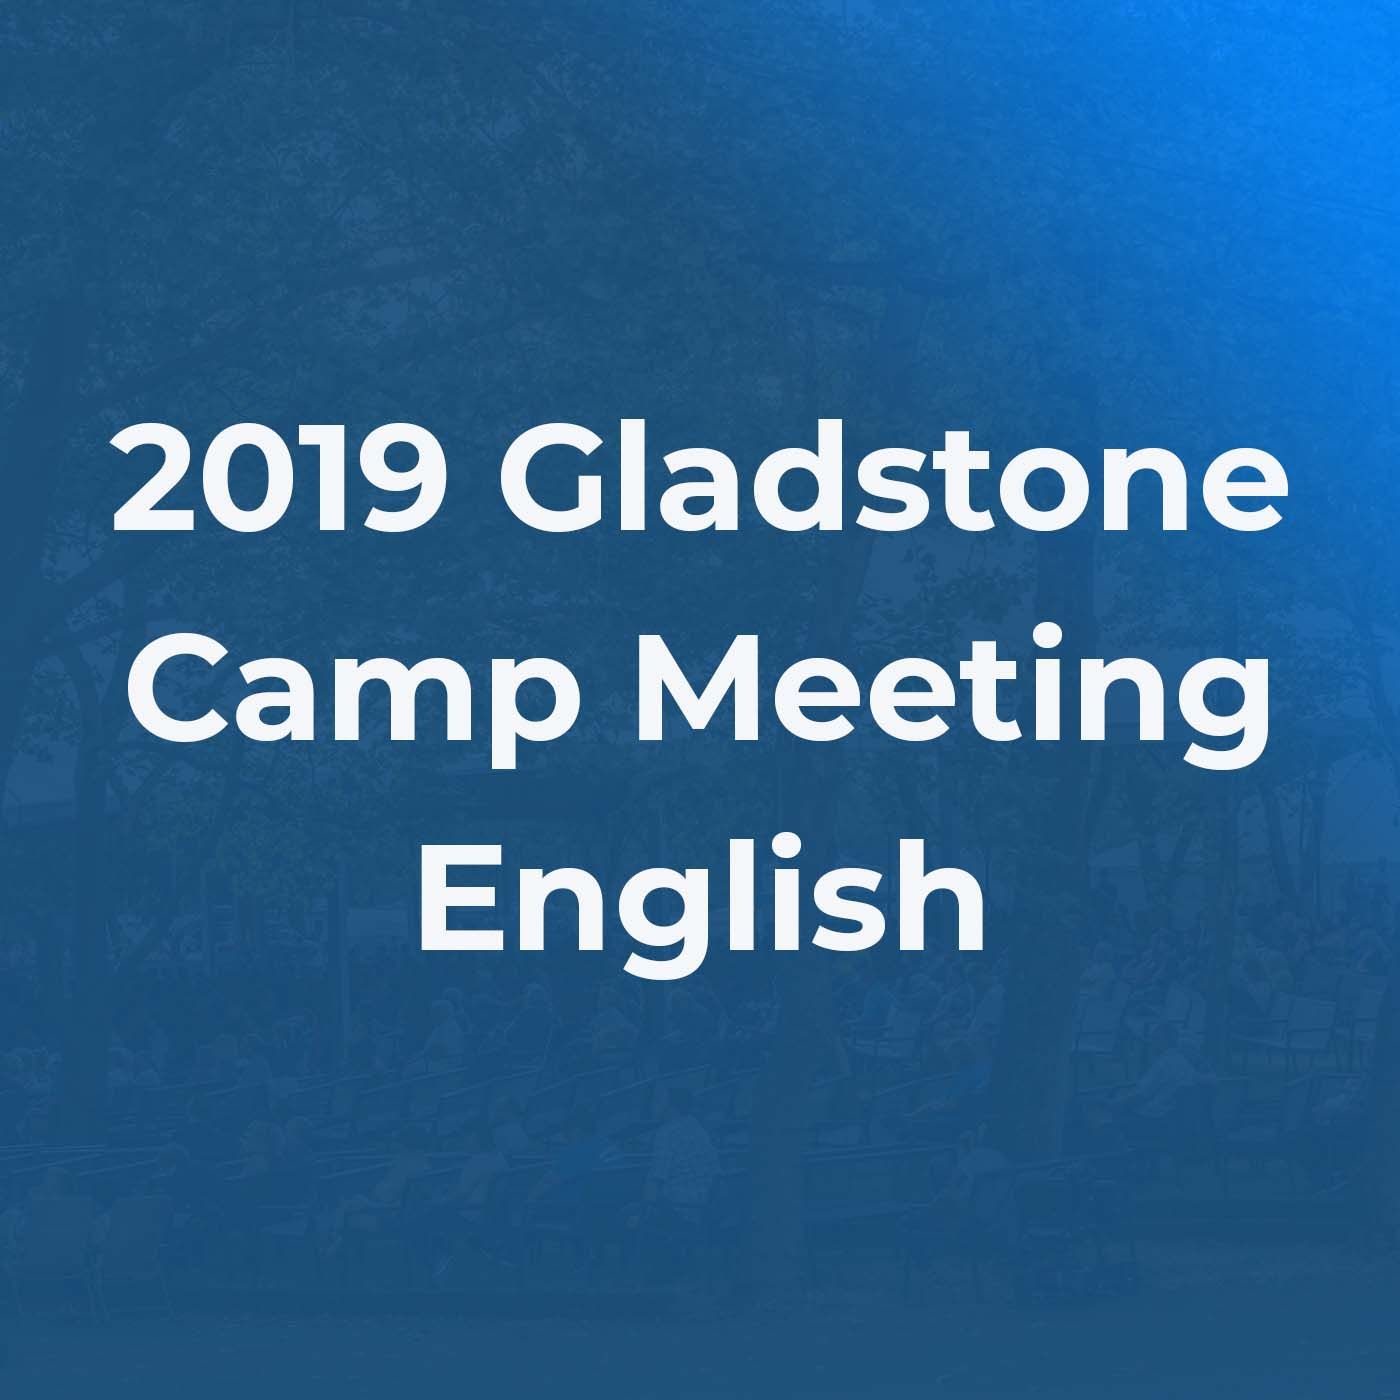 2019 Gladstone Camp Meeting